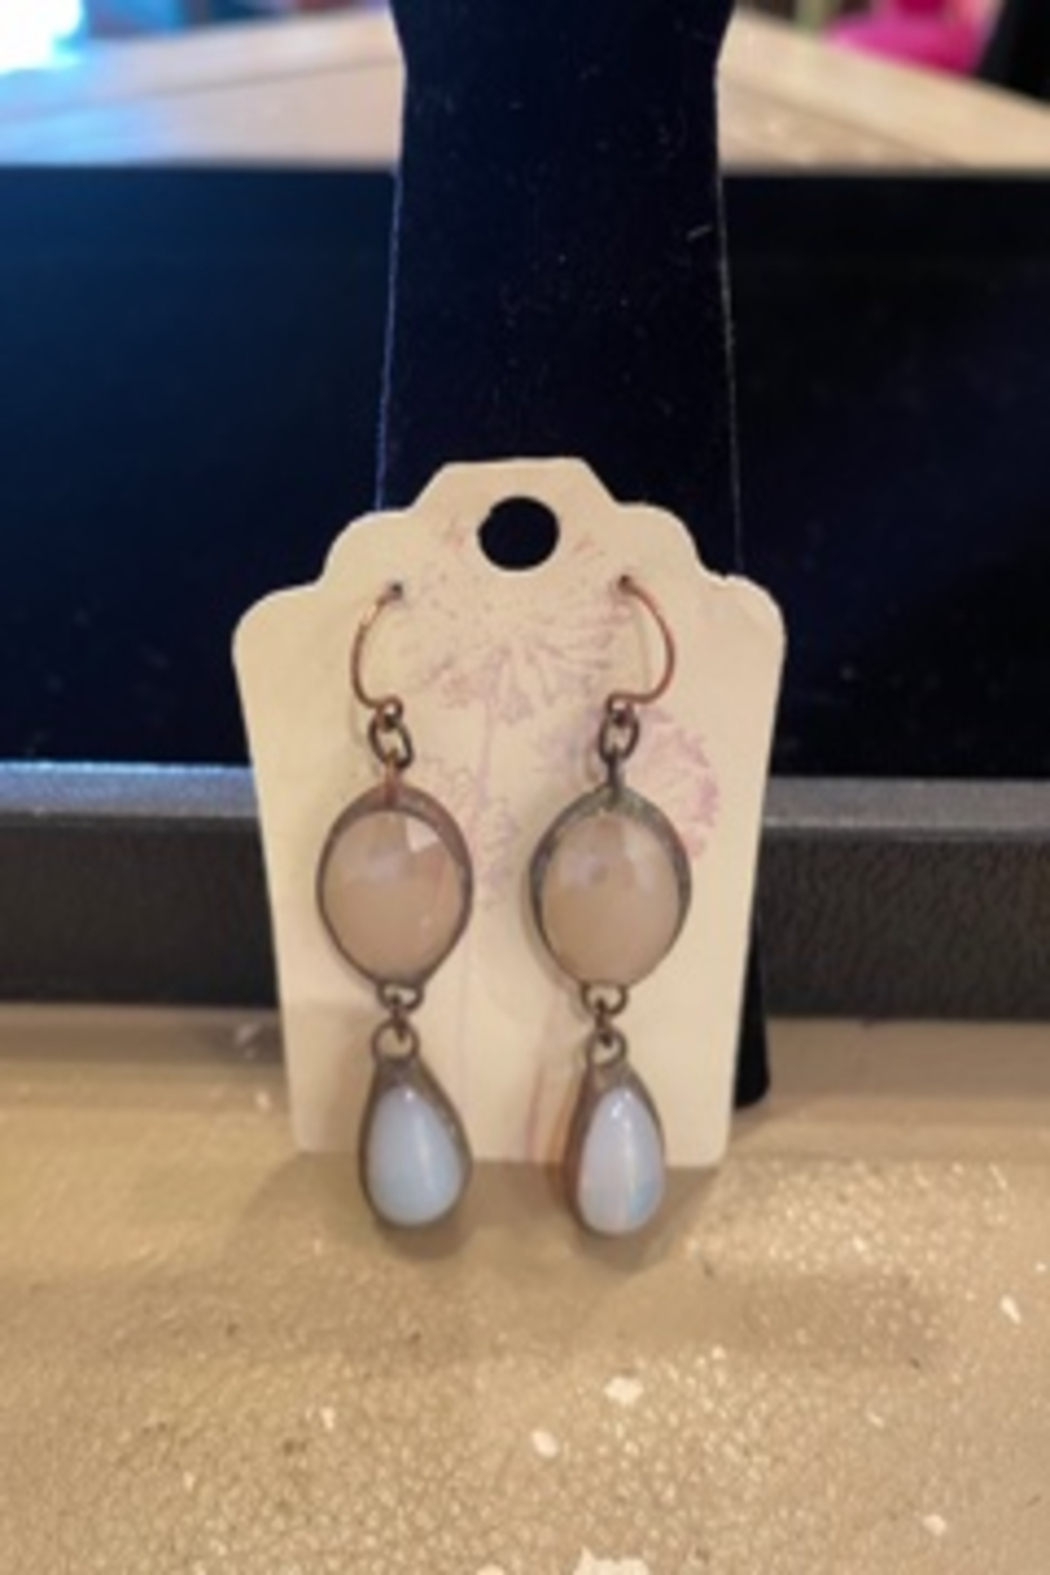 DKM Jewelry DKM stone and opaline earrings - Main Image